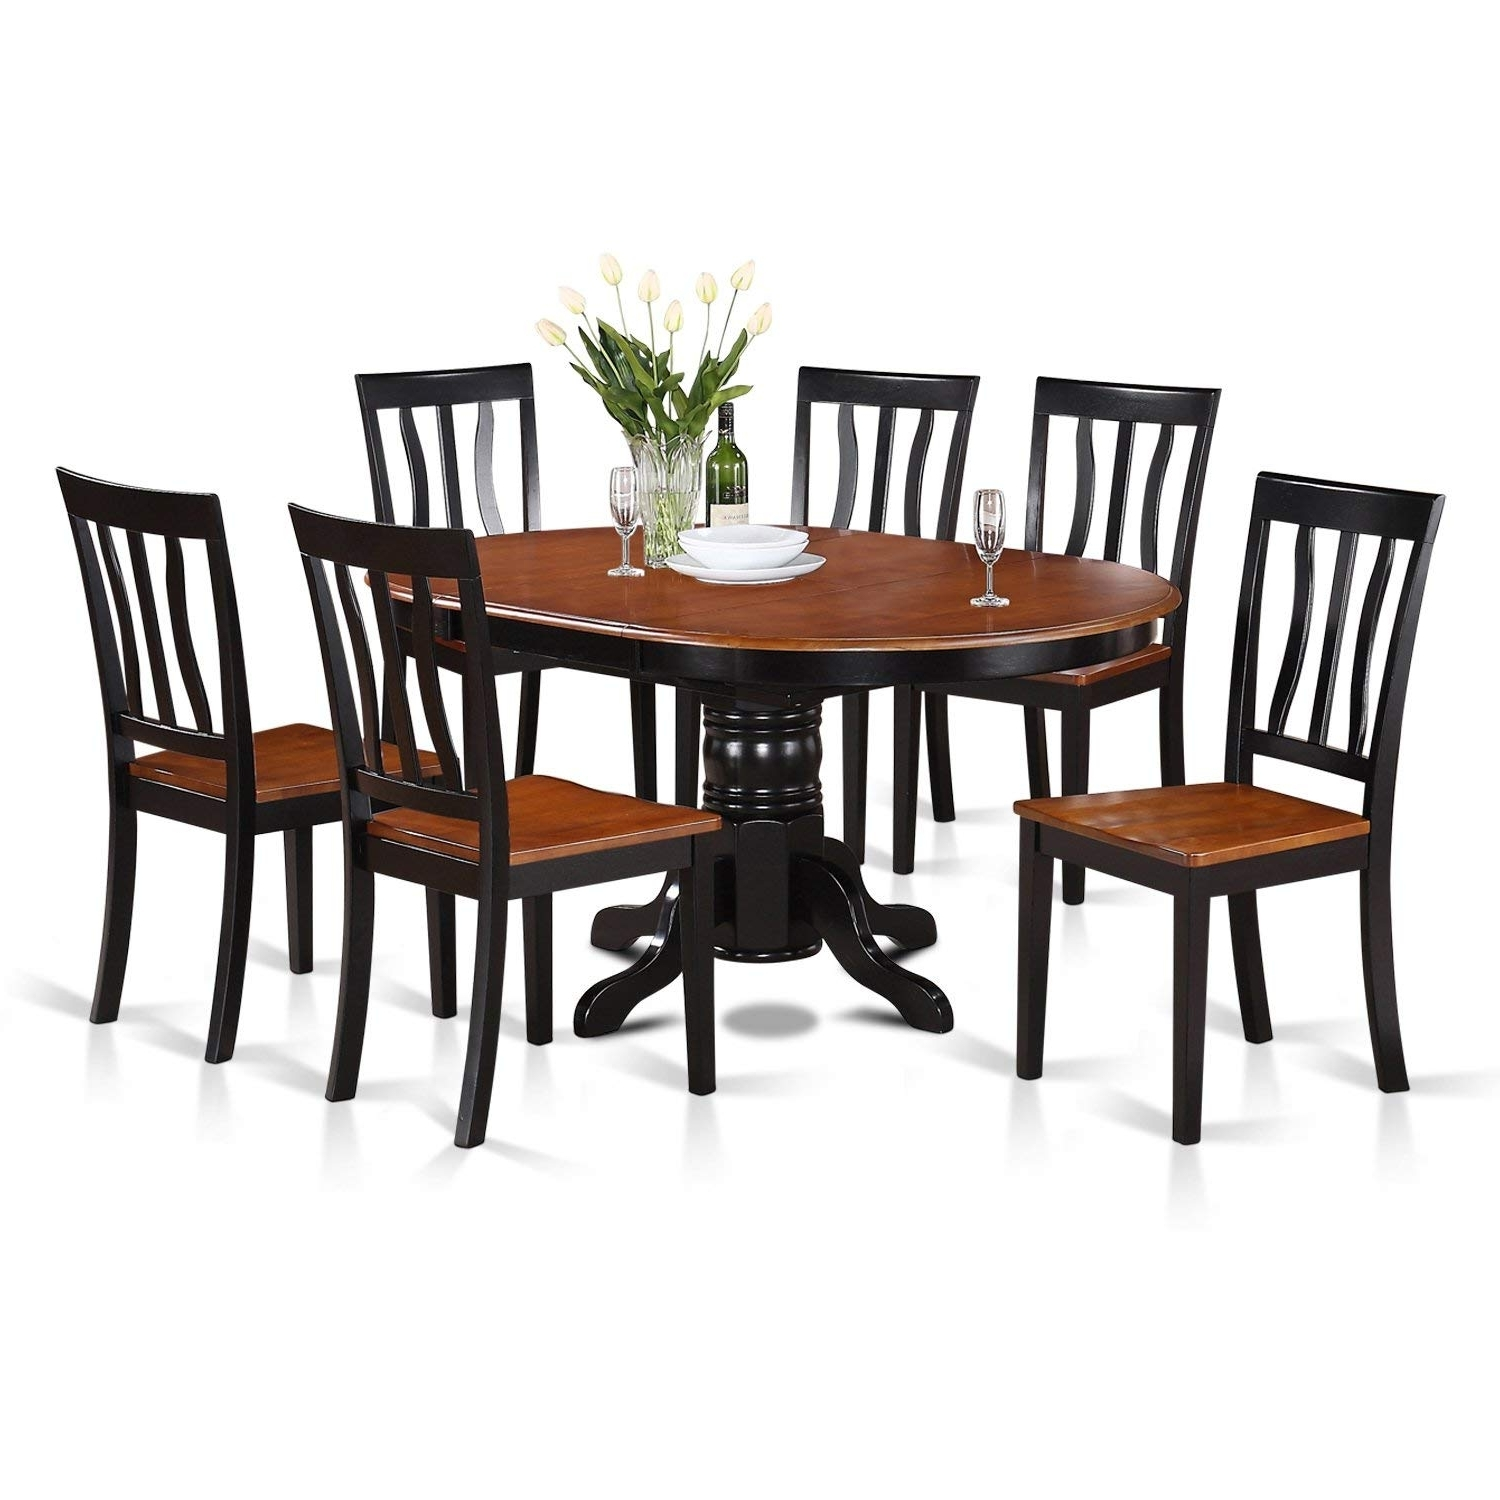 Amazon: East West Furniture Avat7 Blk W 7 Piece Dining Table Set In Most Recently Released Jaxon 6 Piece Rectangle Dining Sets With Bench & Uph Chairs (View 3 of 25)